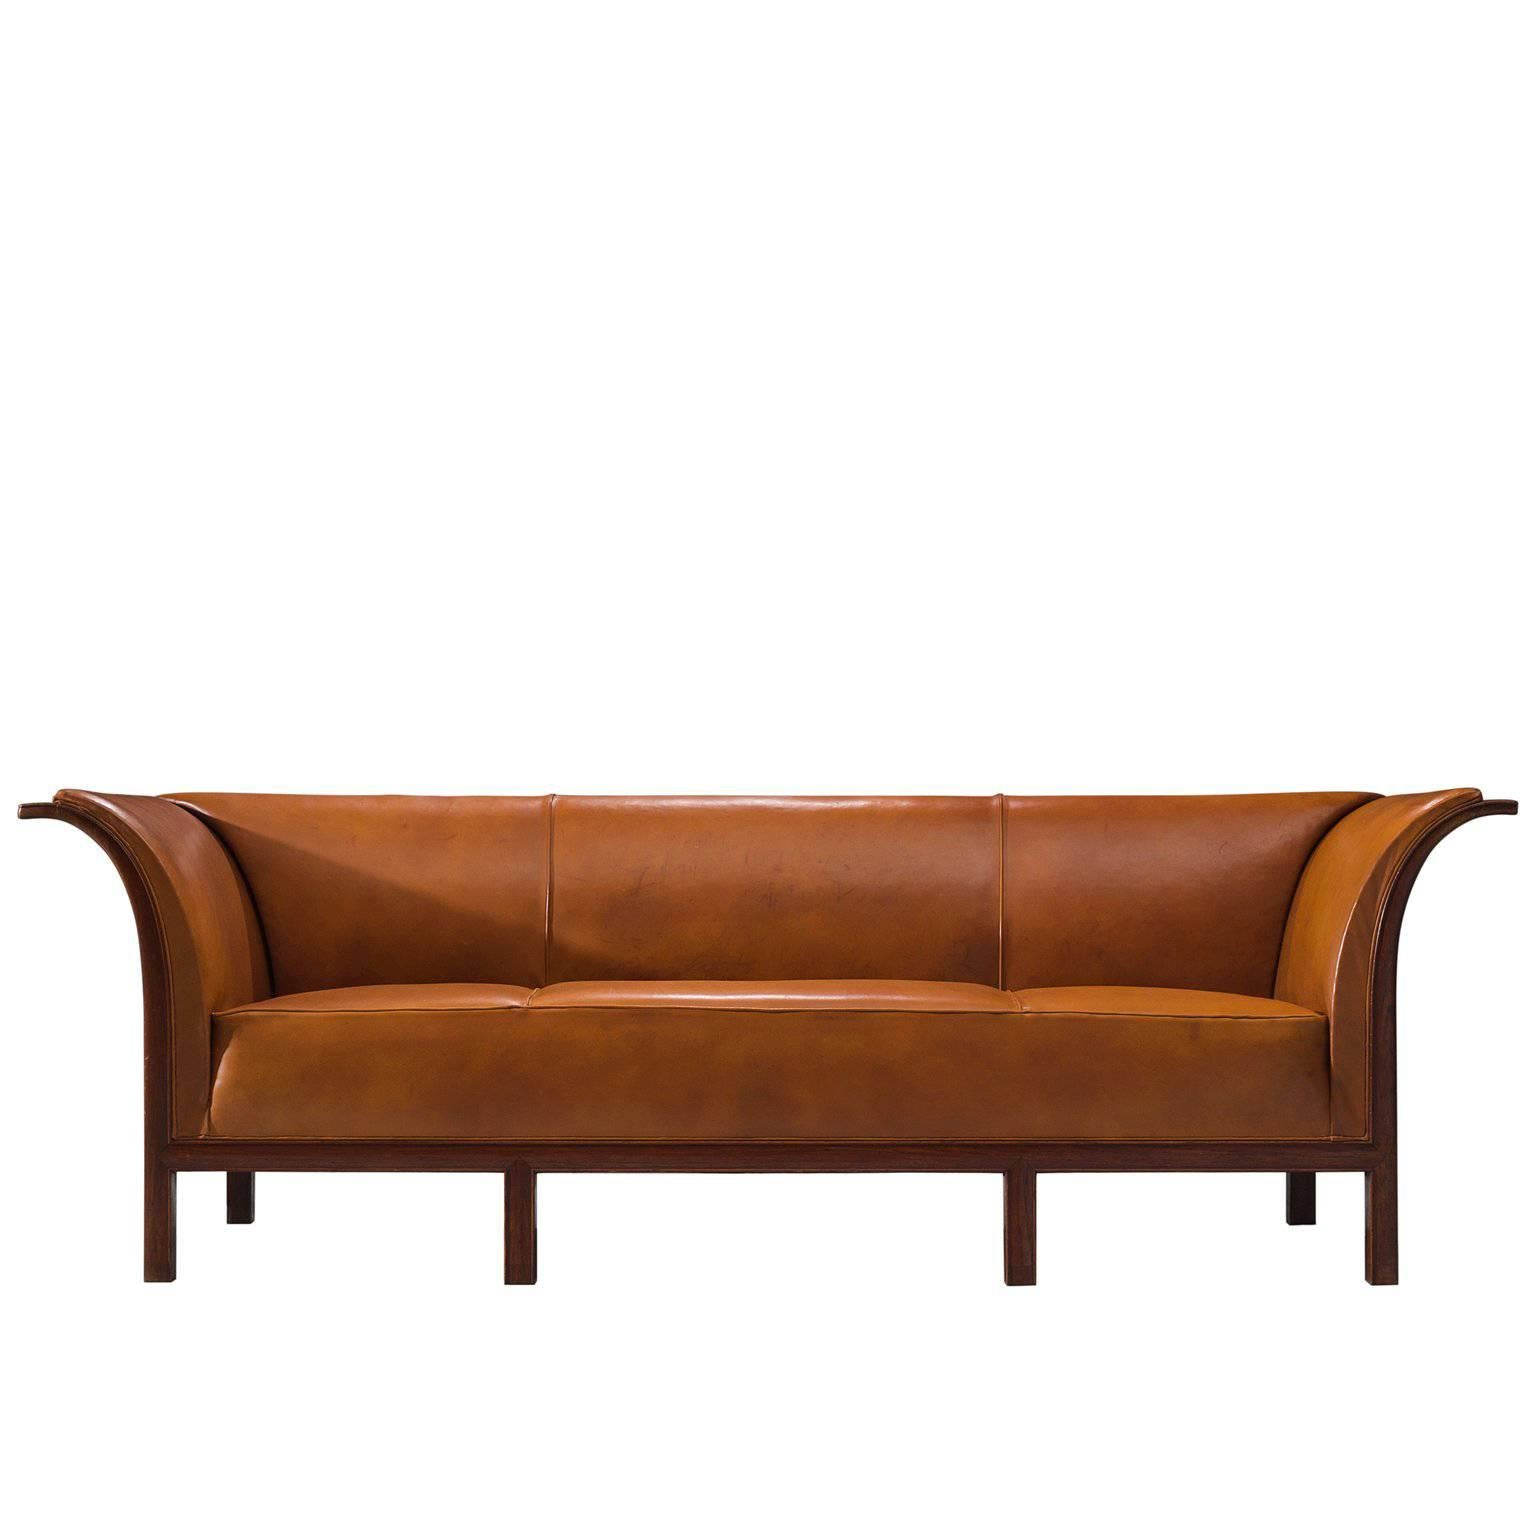 Frits Henningsen Sofa In Teak And Cognac Leather Circa 1930 Antique Leather Sofa90